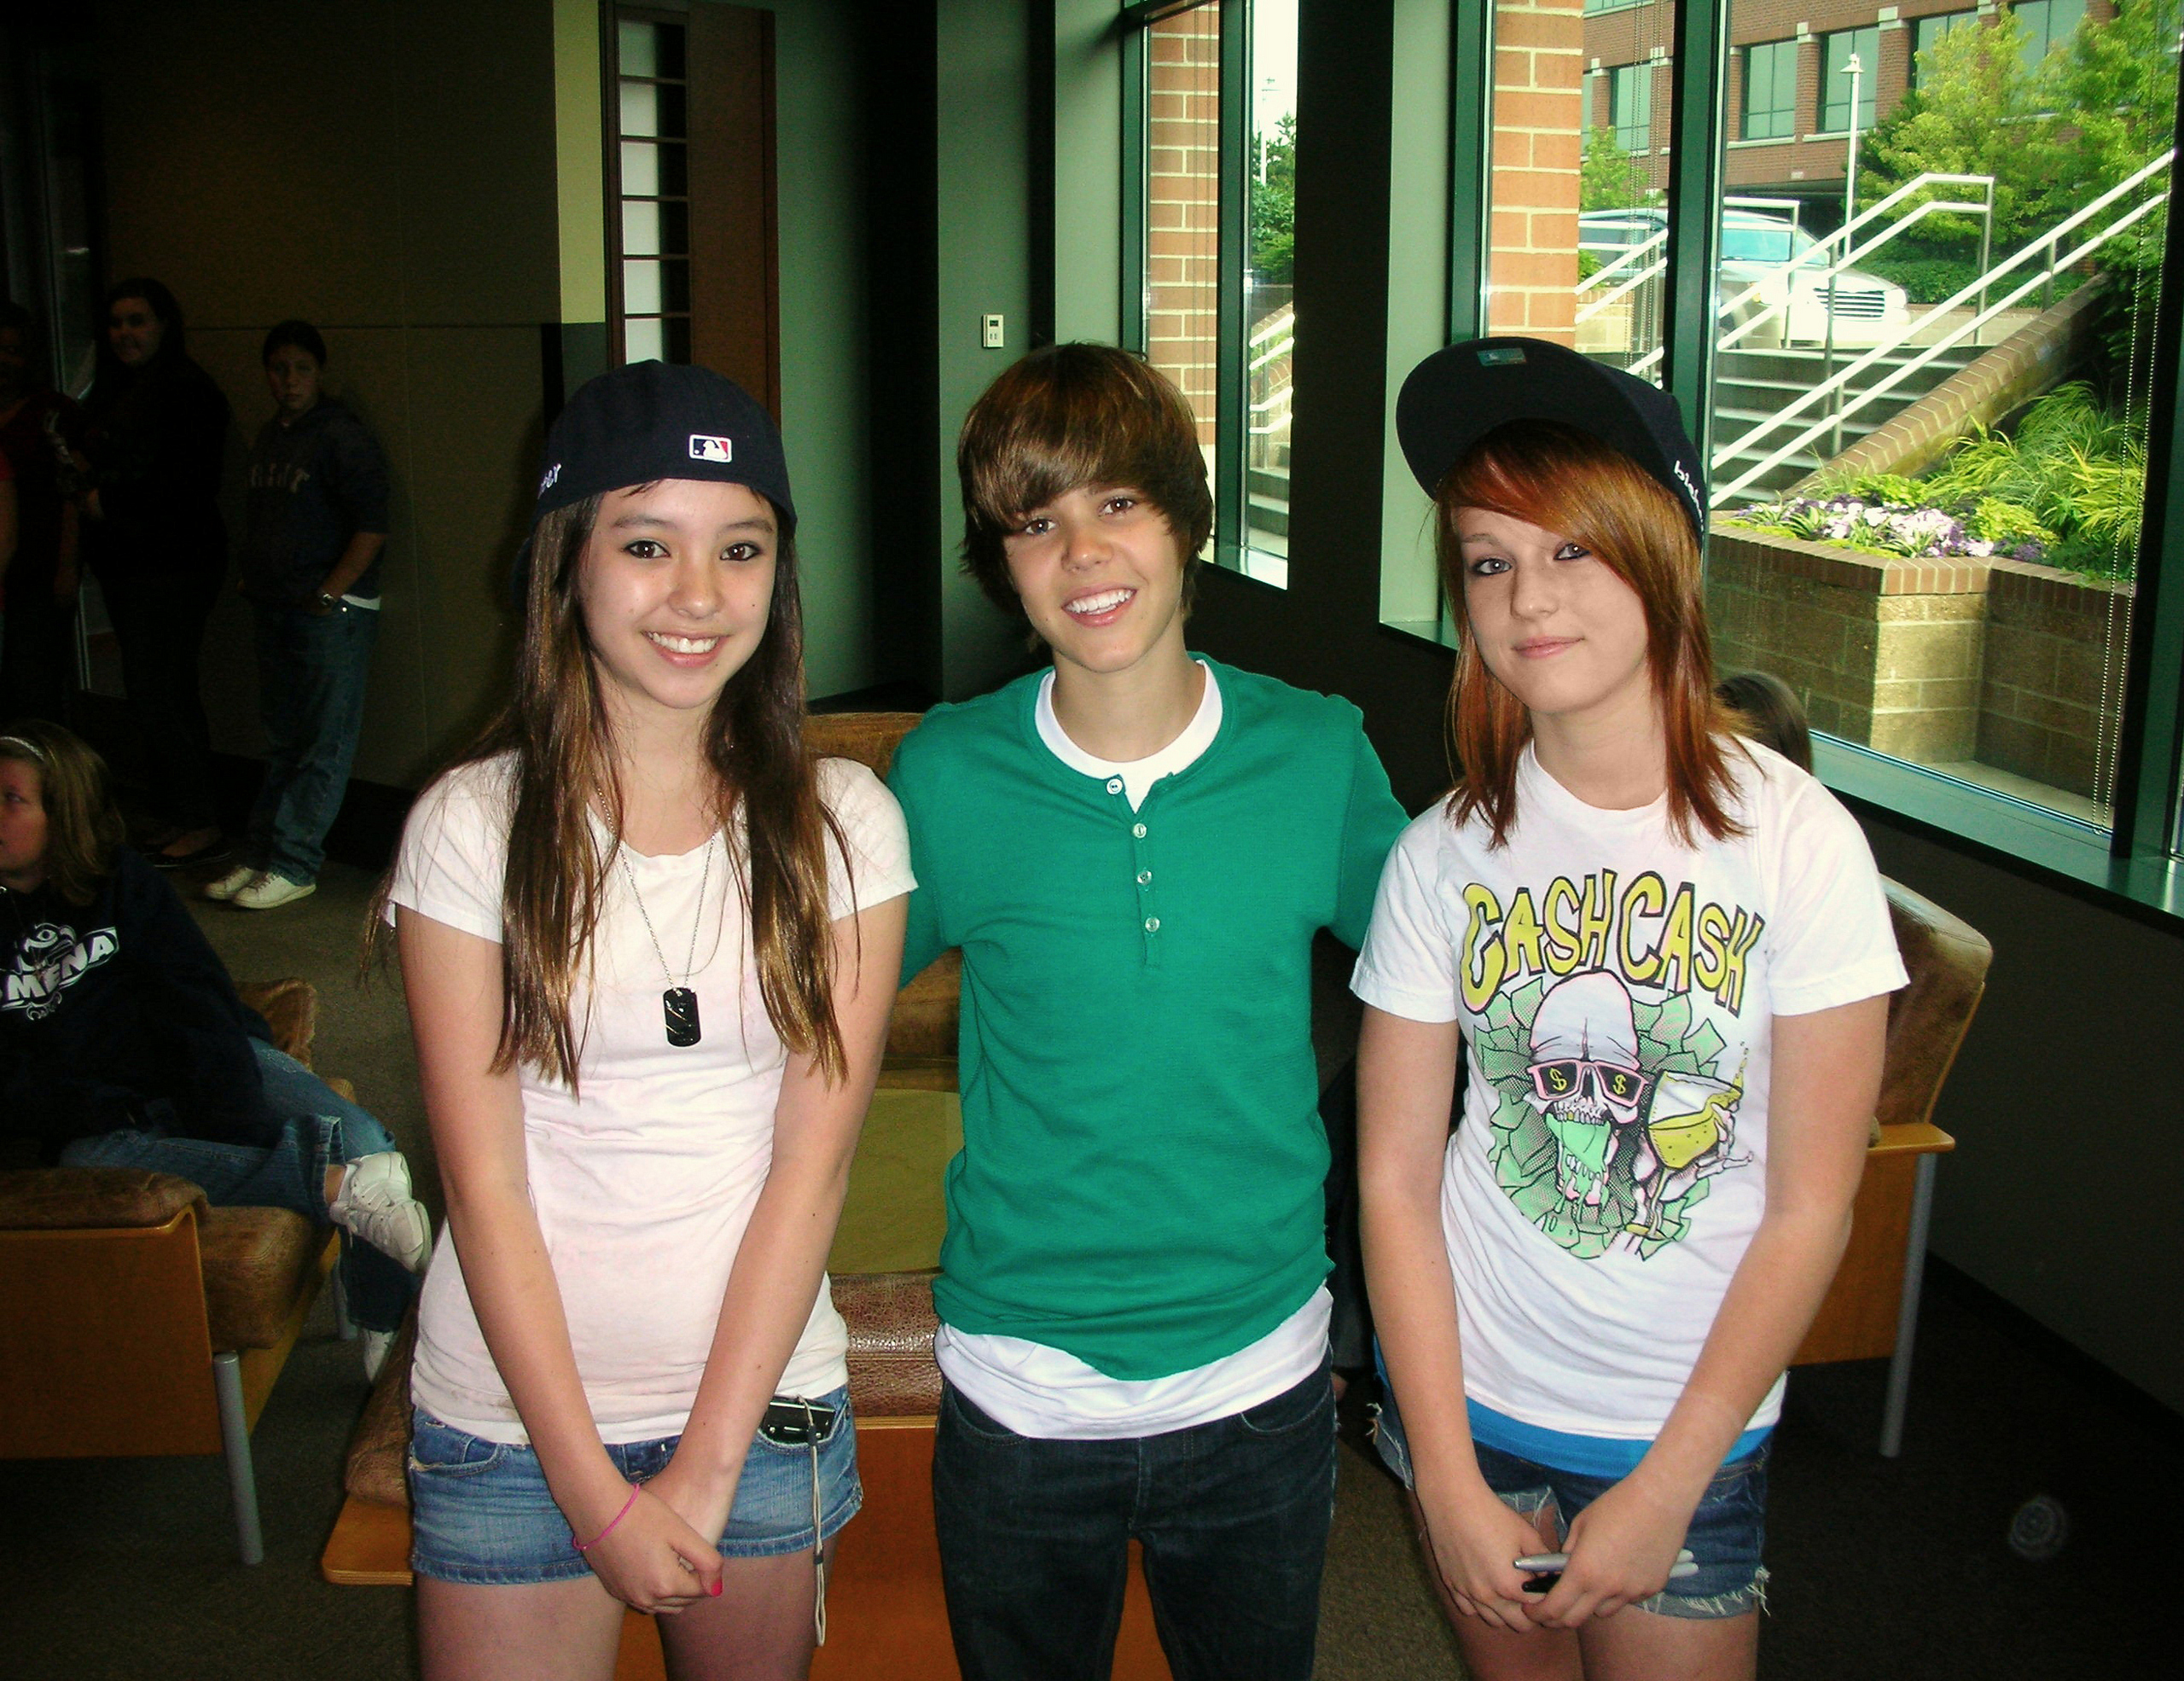 me and justin!